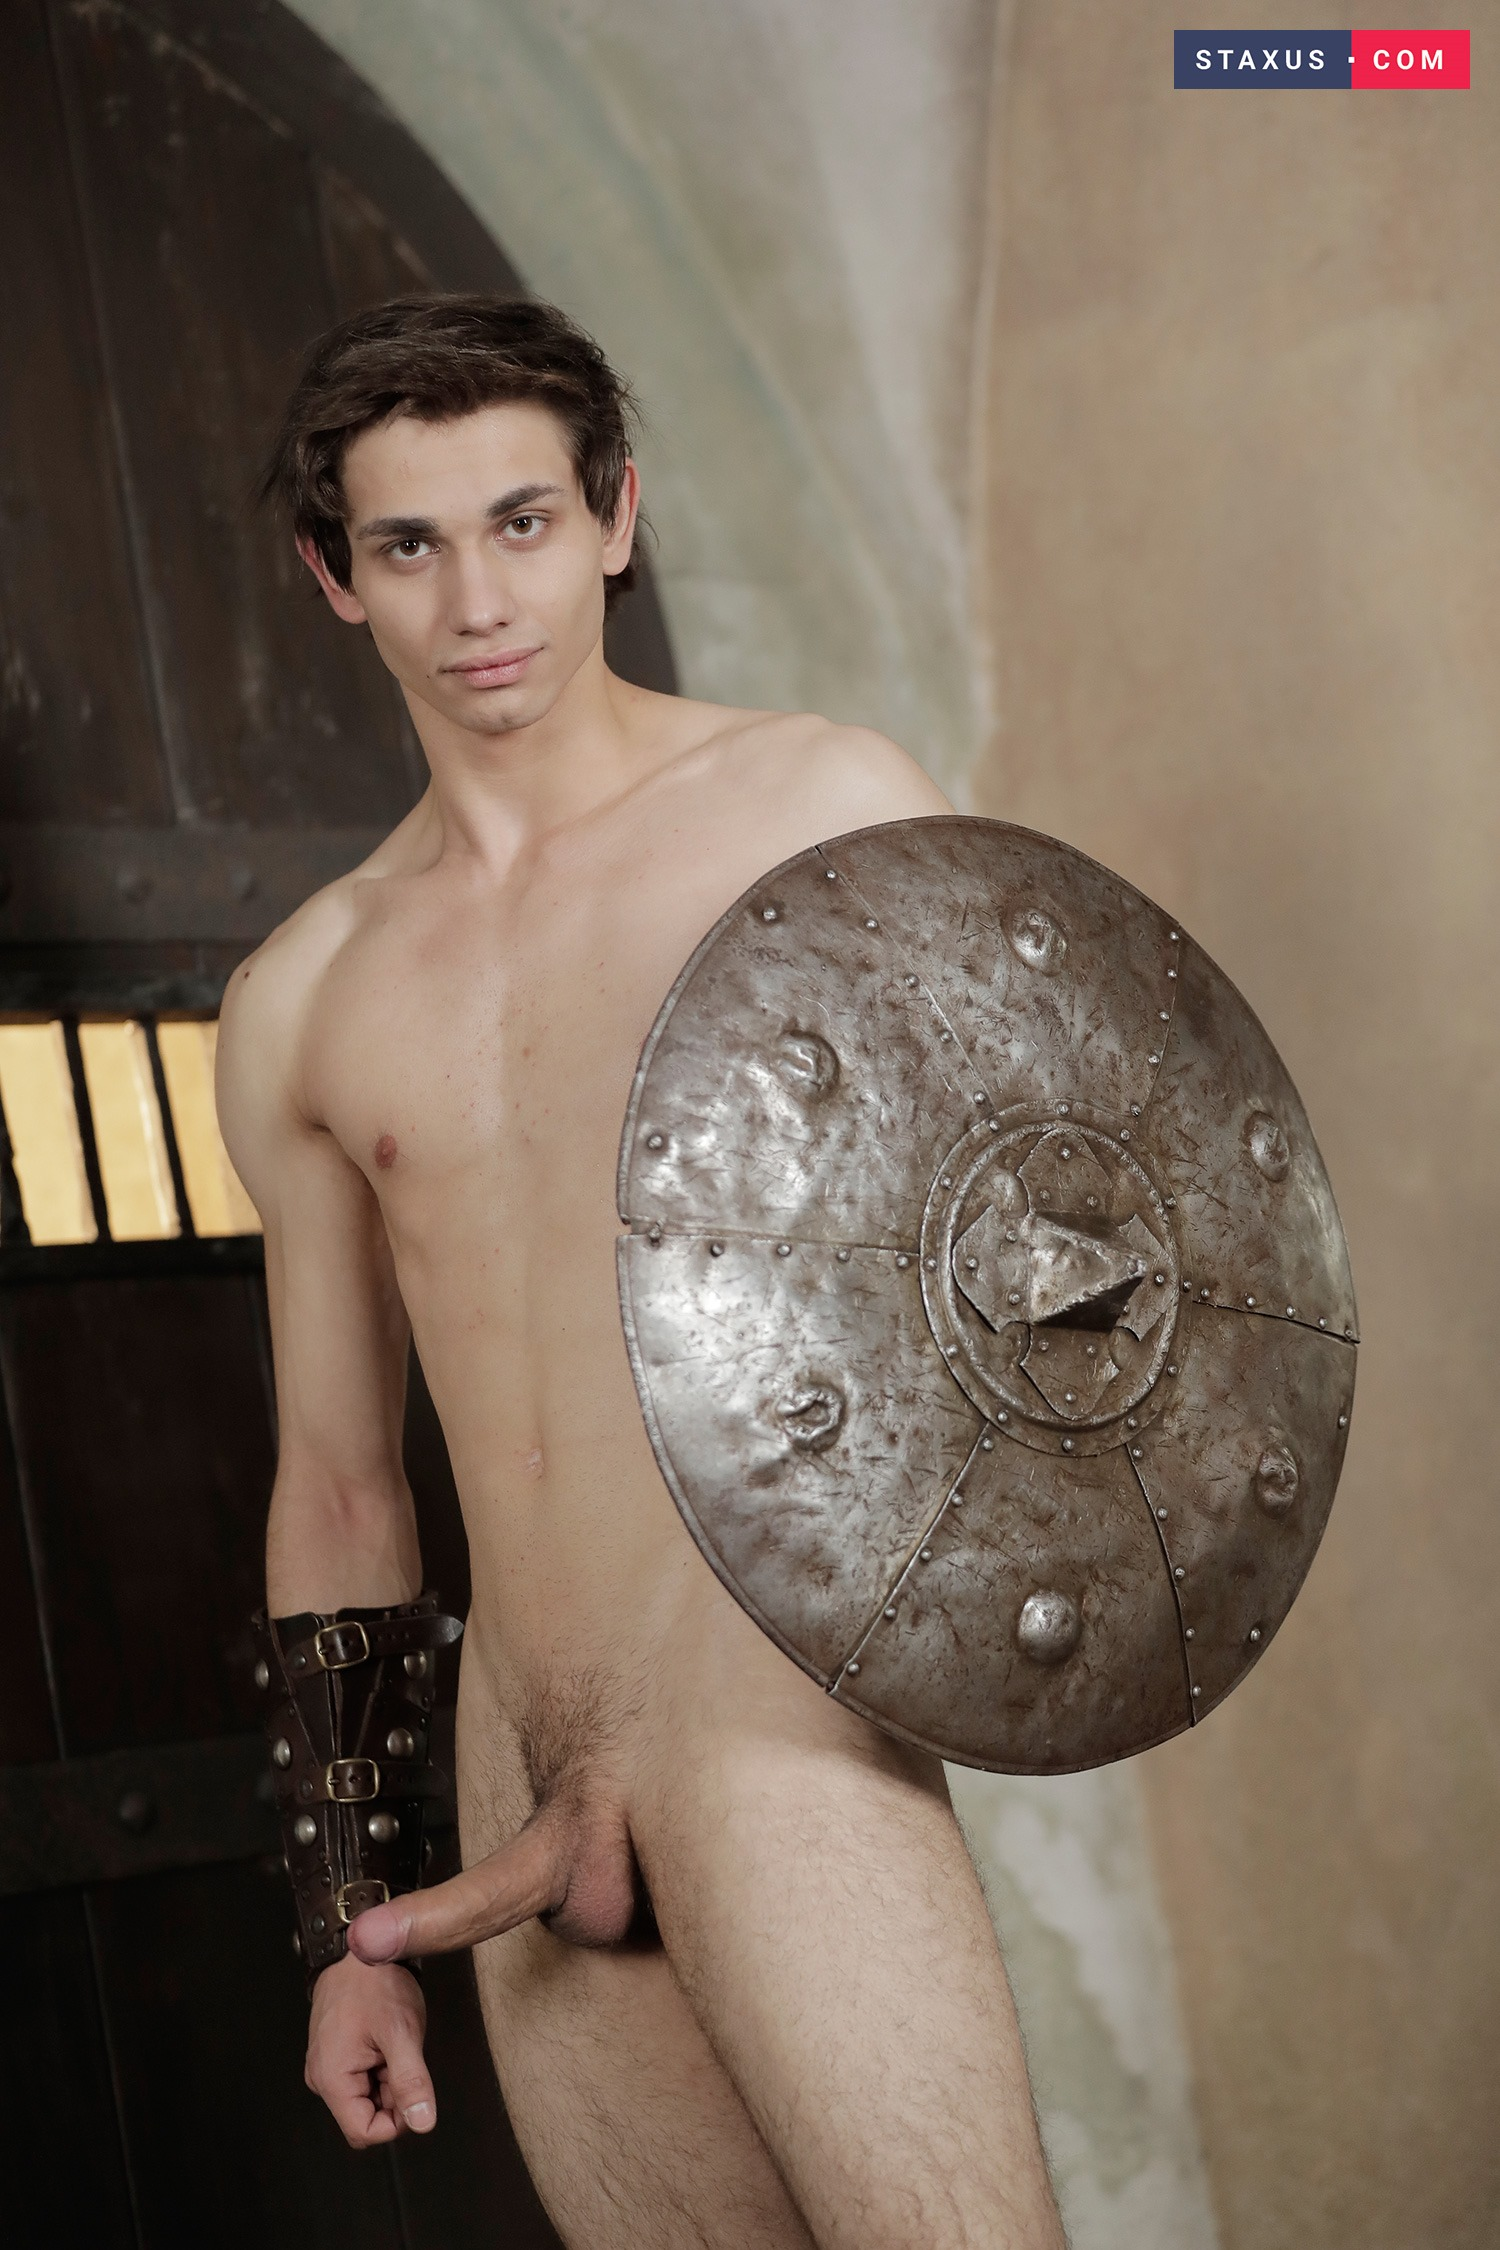 young-big-dicks-in-action-2 – boy post – blog about free gay